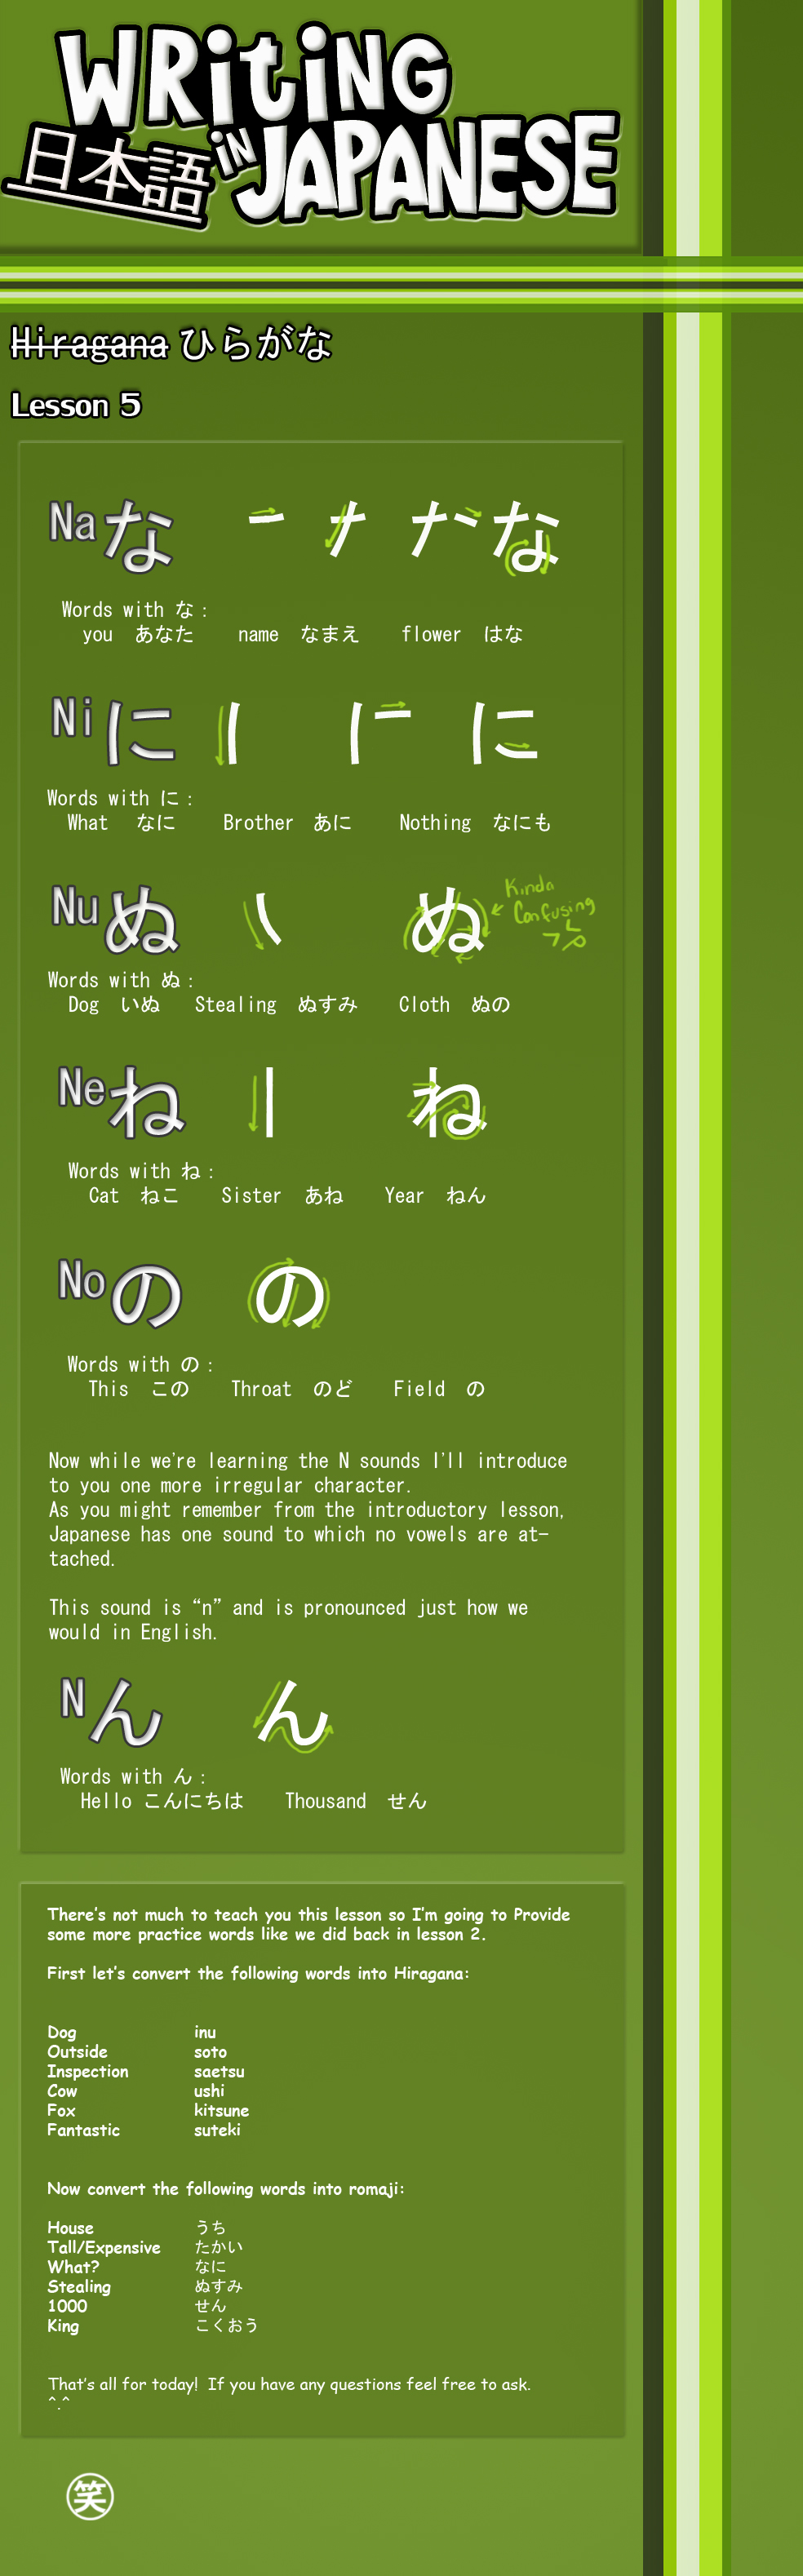 japanese writing in english Japanese writing in english letters is referred to as romaji it is very useful to begin learning japanese because it is easy to see how the language.